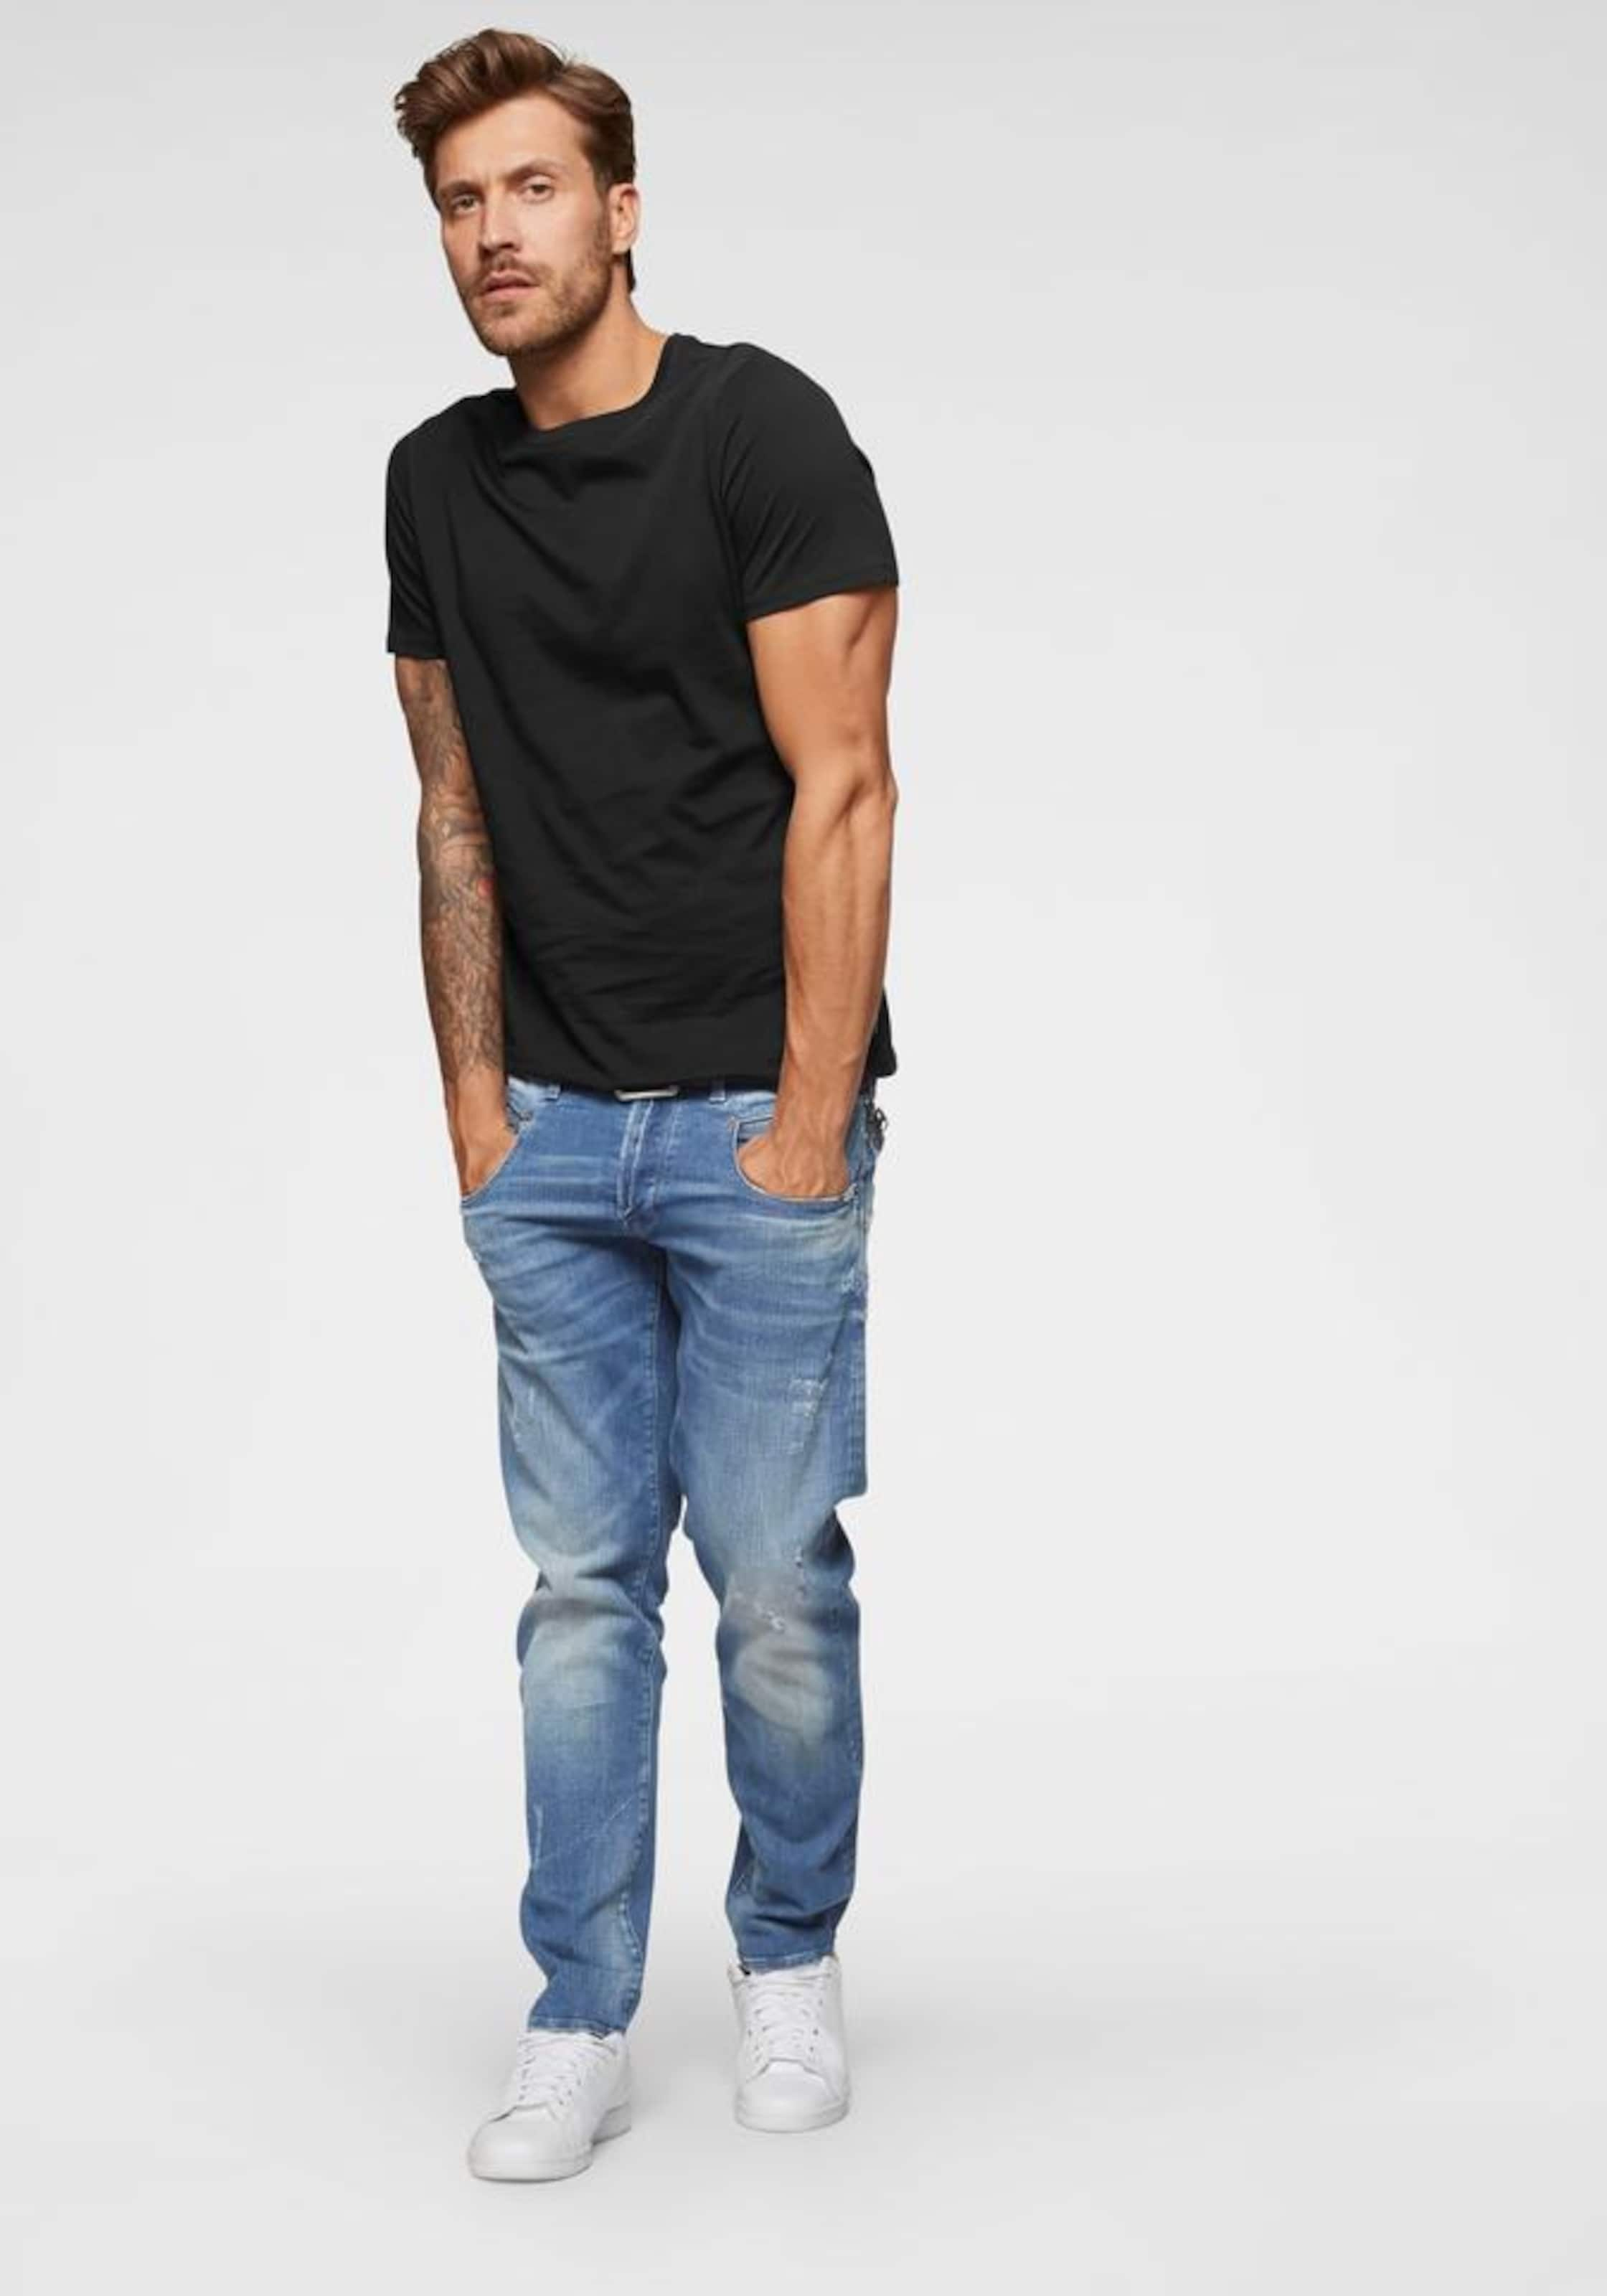 Jackamp; En Noir 'organic shirt Jones T Basic Tee' nO08wPk